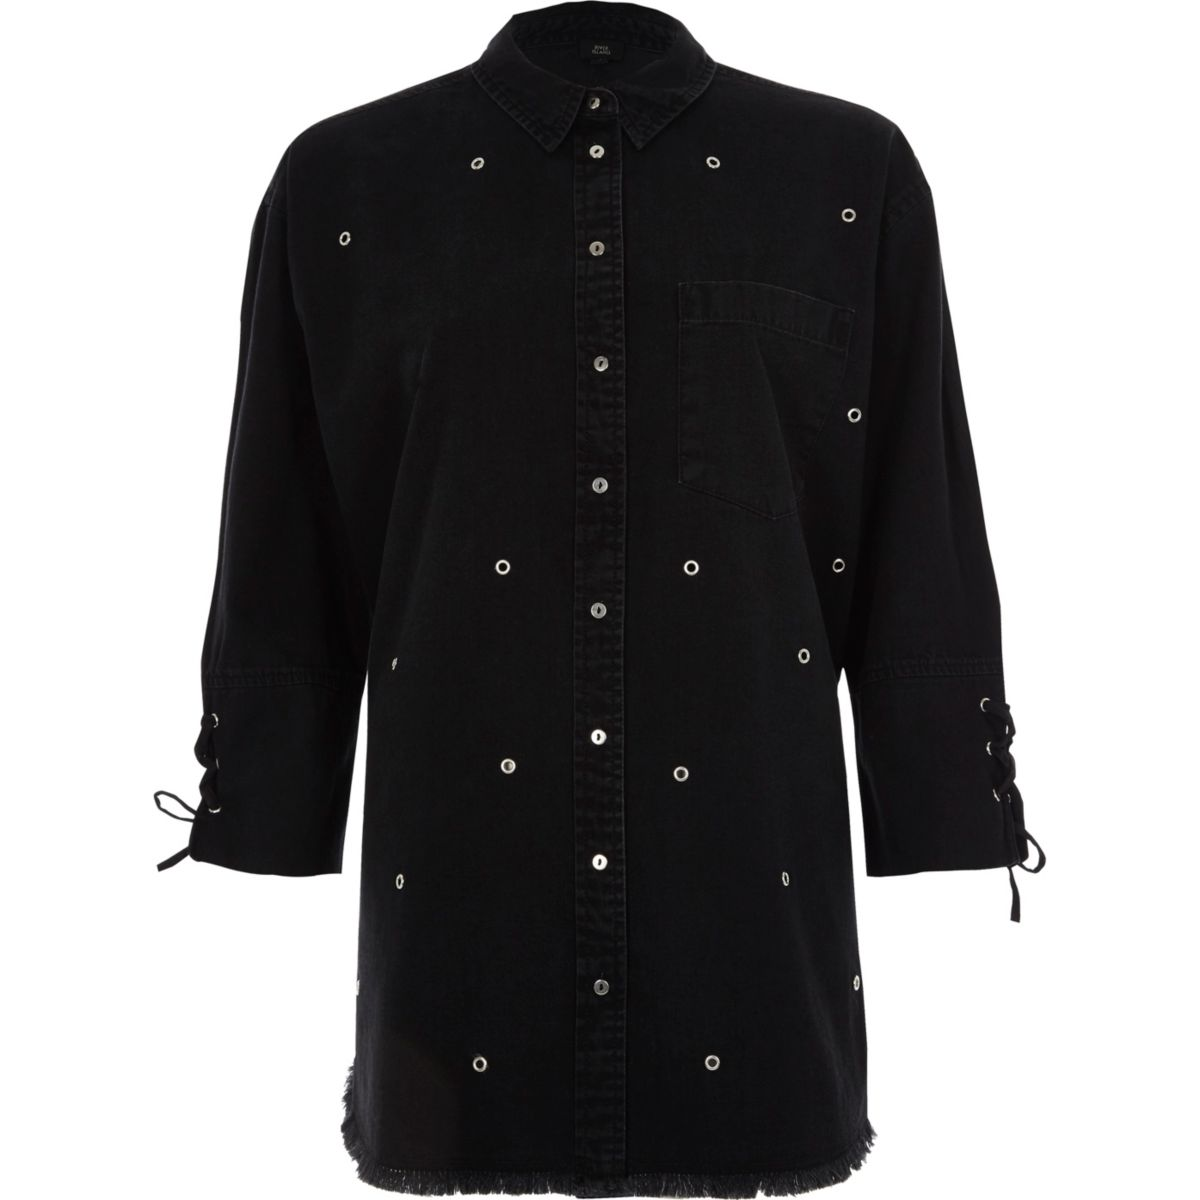 Black eyelet stud lace-up cuff denim shirt